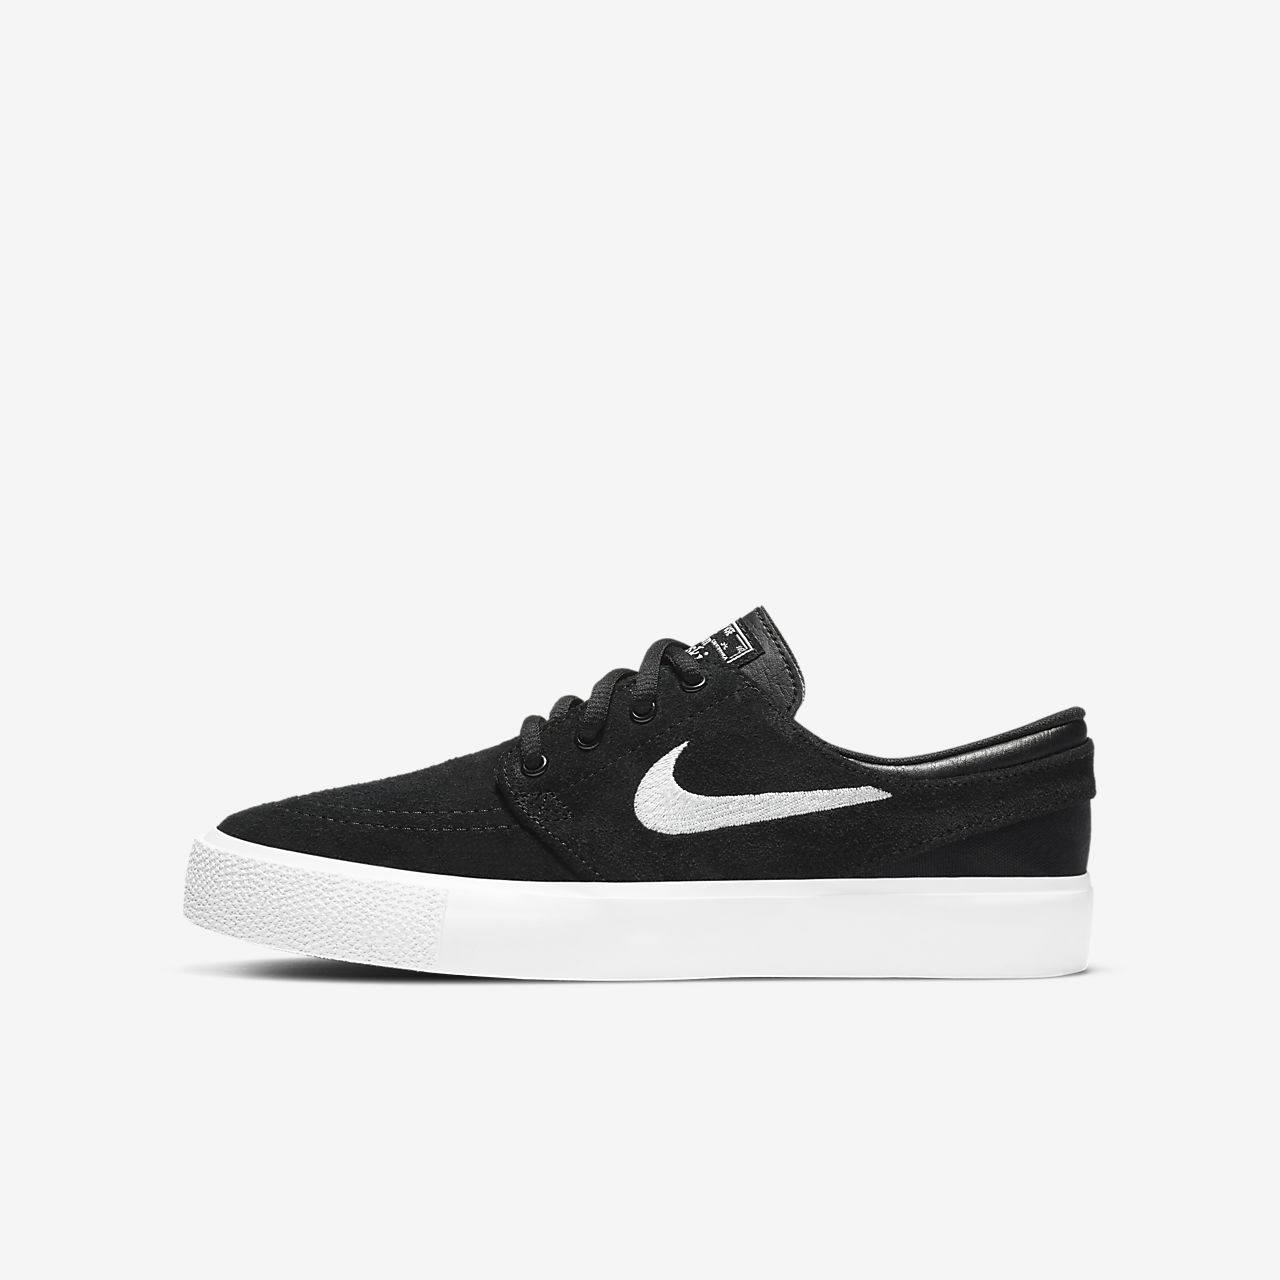 wholesale dealer aa79c 0a2b0 ... Nike Zoom Stefan Janoski Older Kids  Skateboarding Shoe